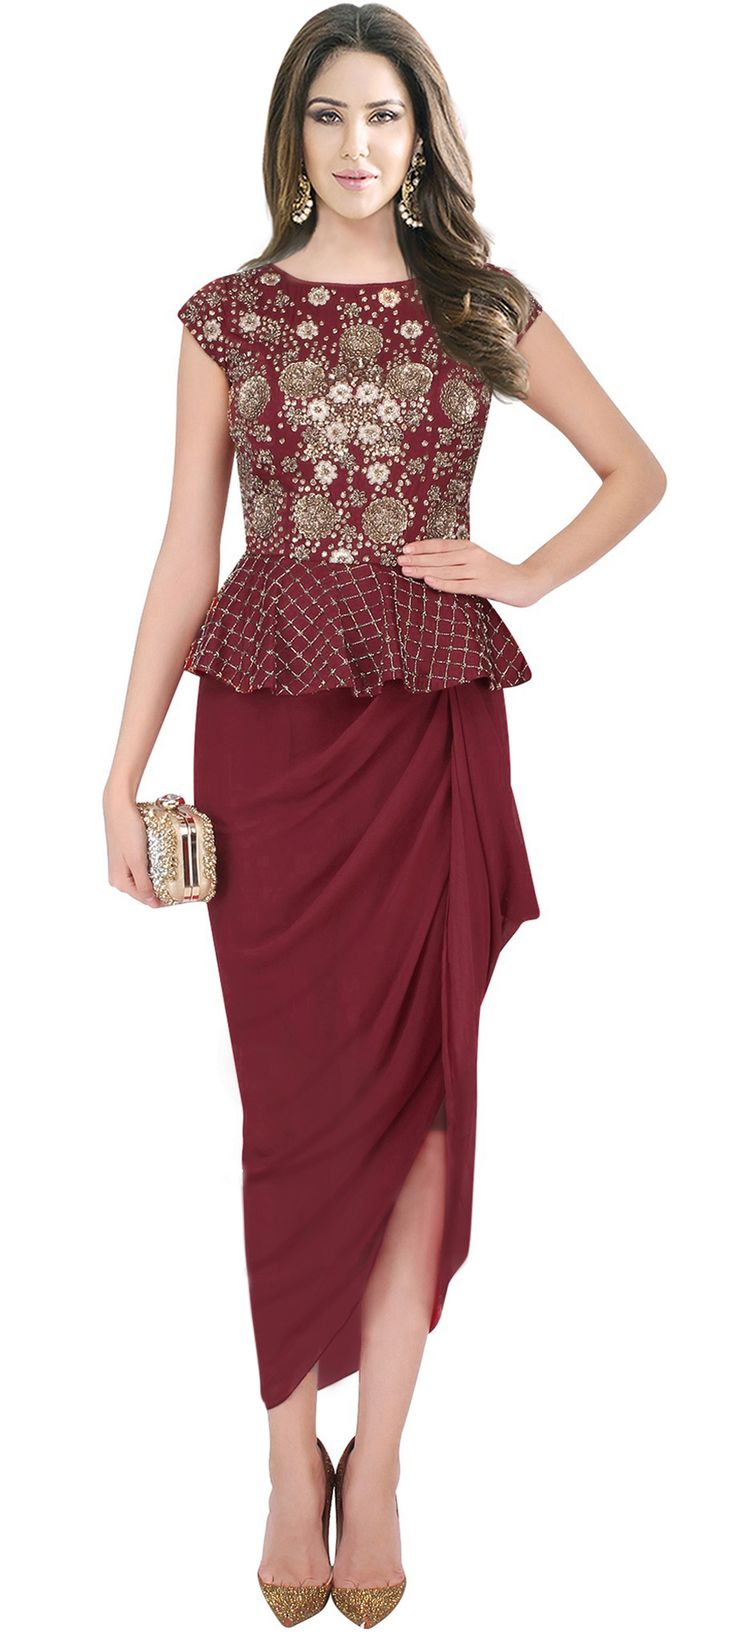 478507: Red and Maroon  color family  stitched gown .